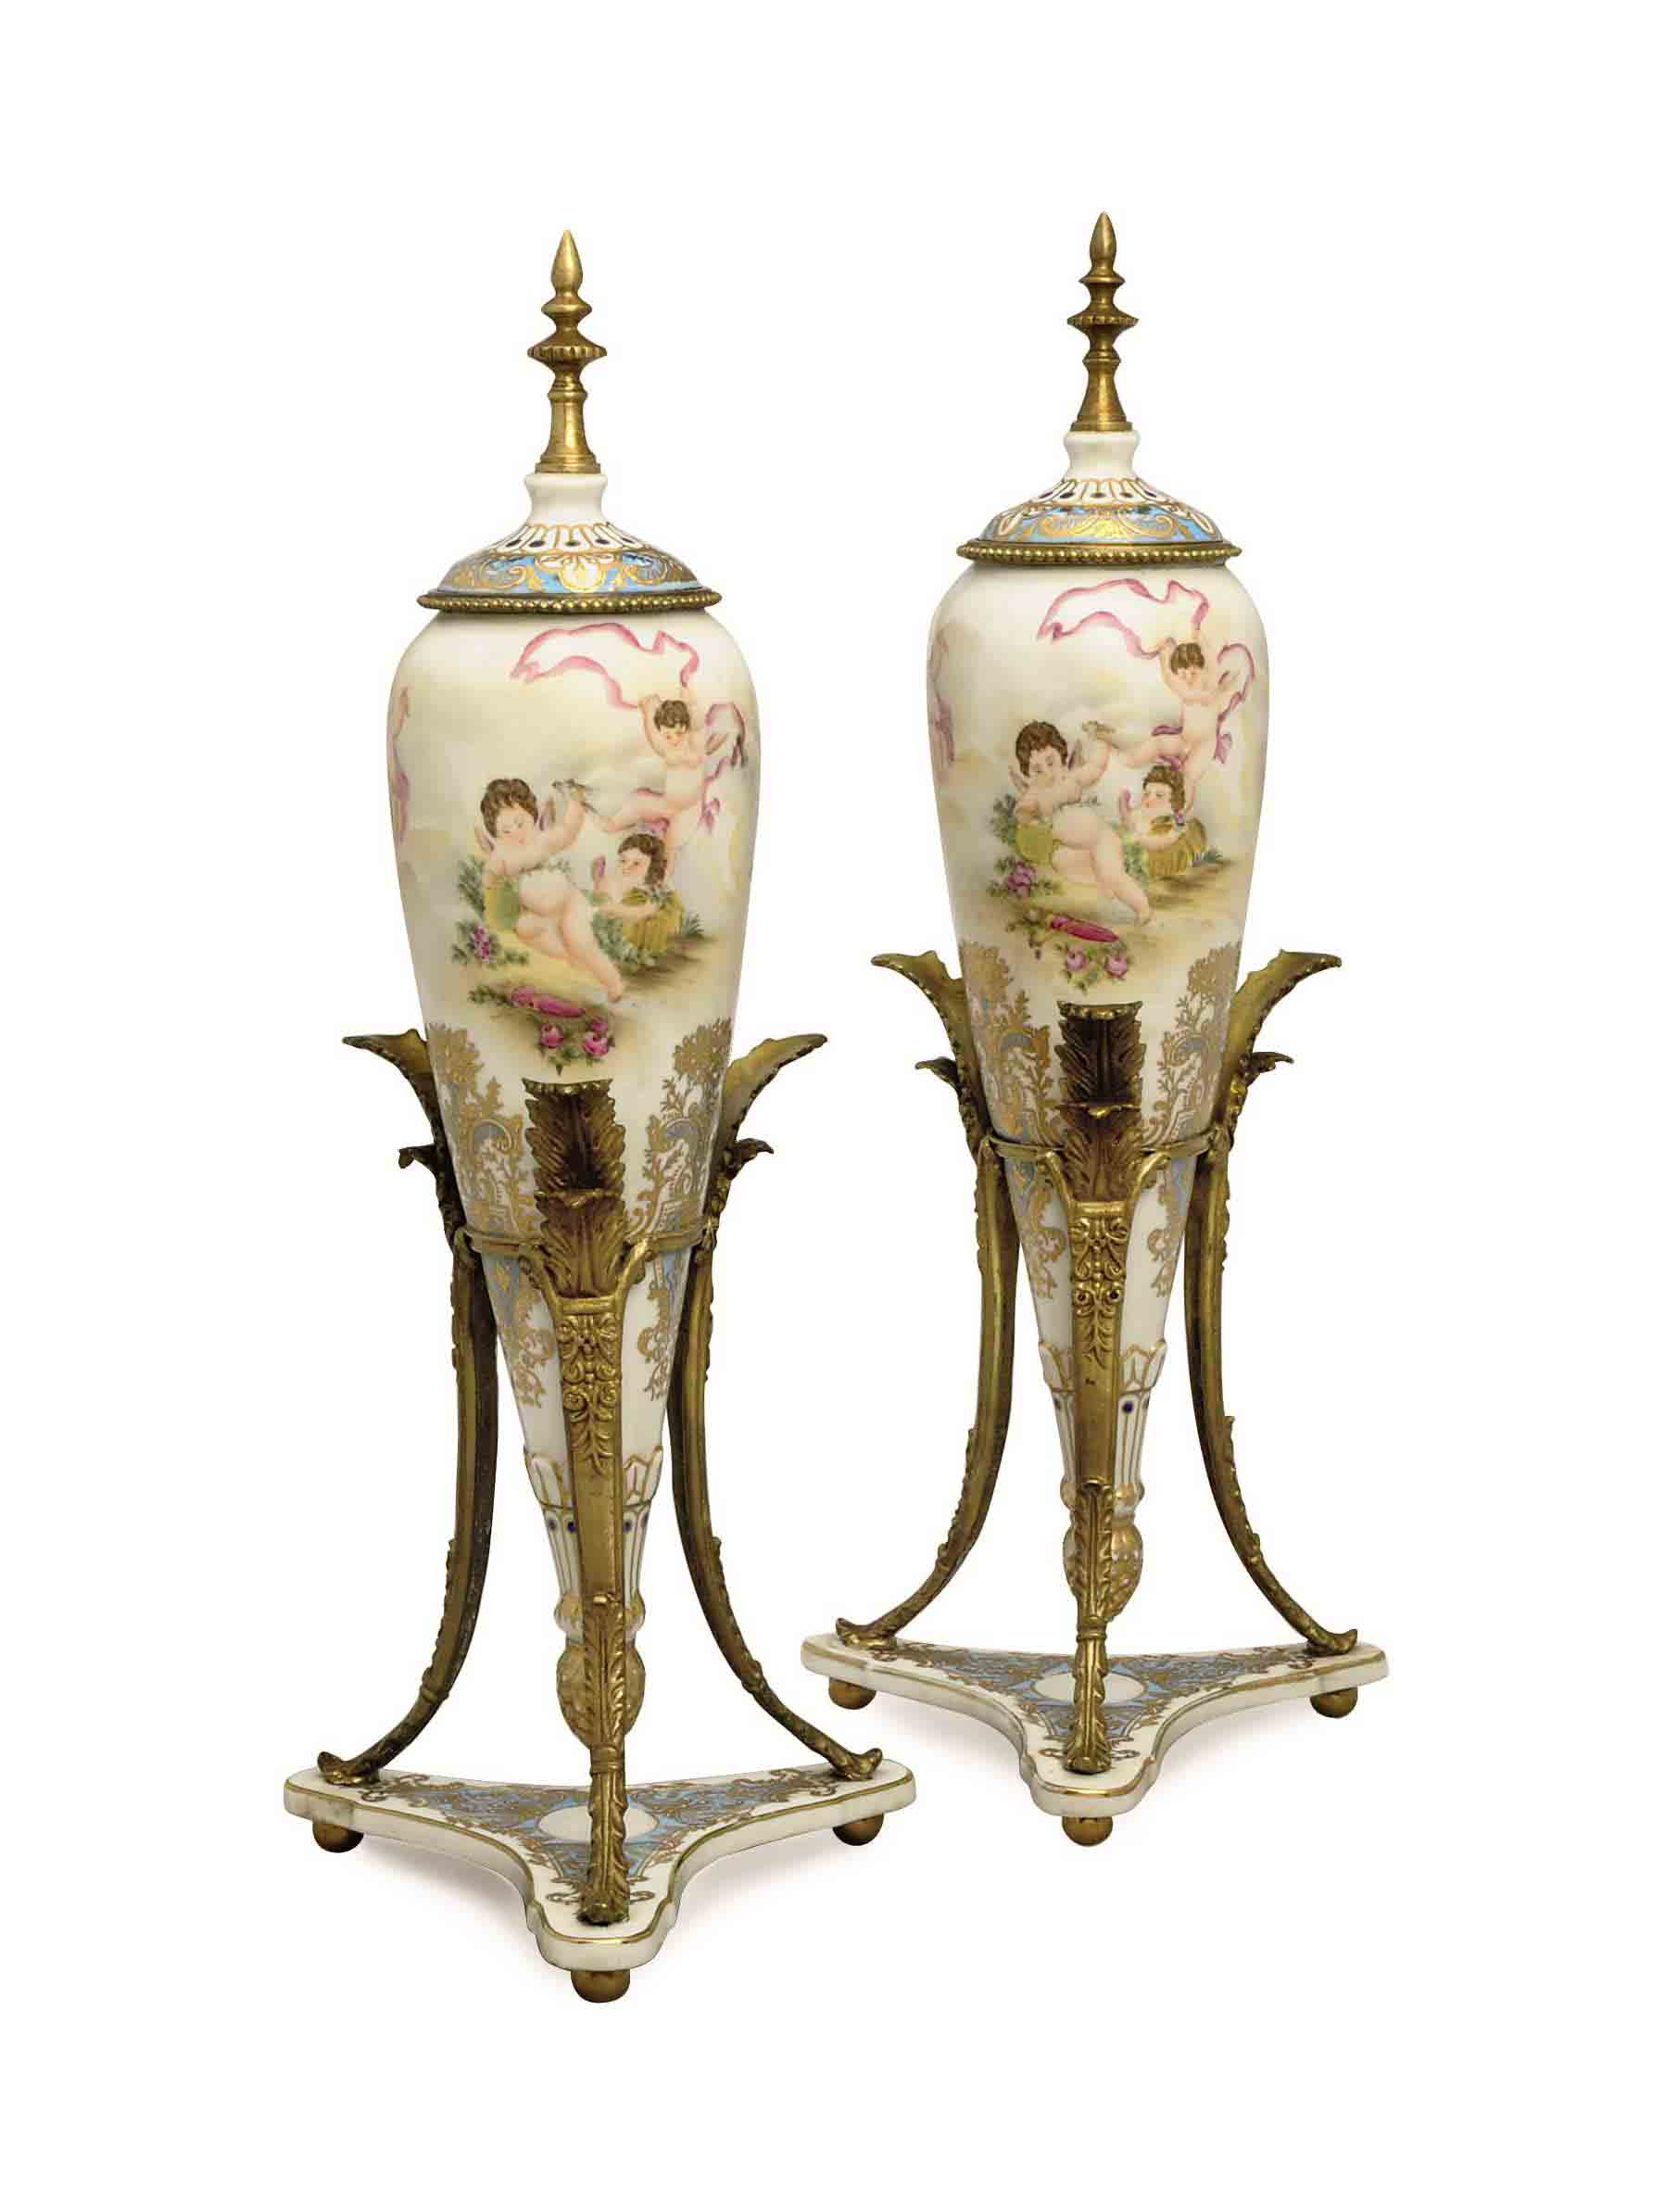 A PAIR OF PATINATED-BRONZE MOU